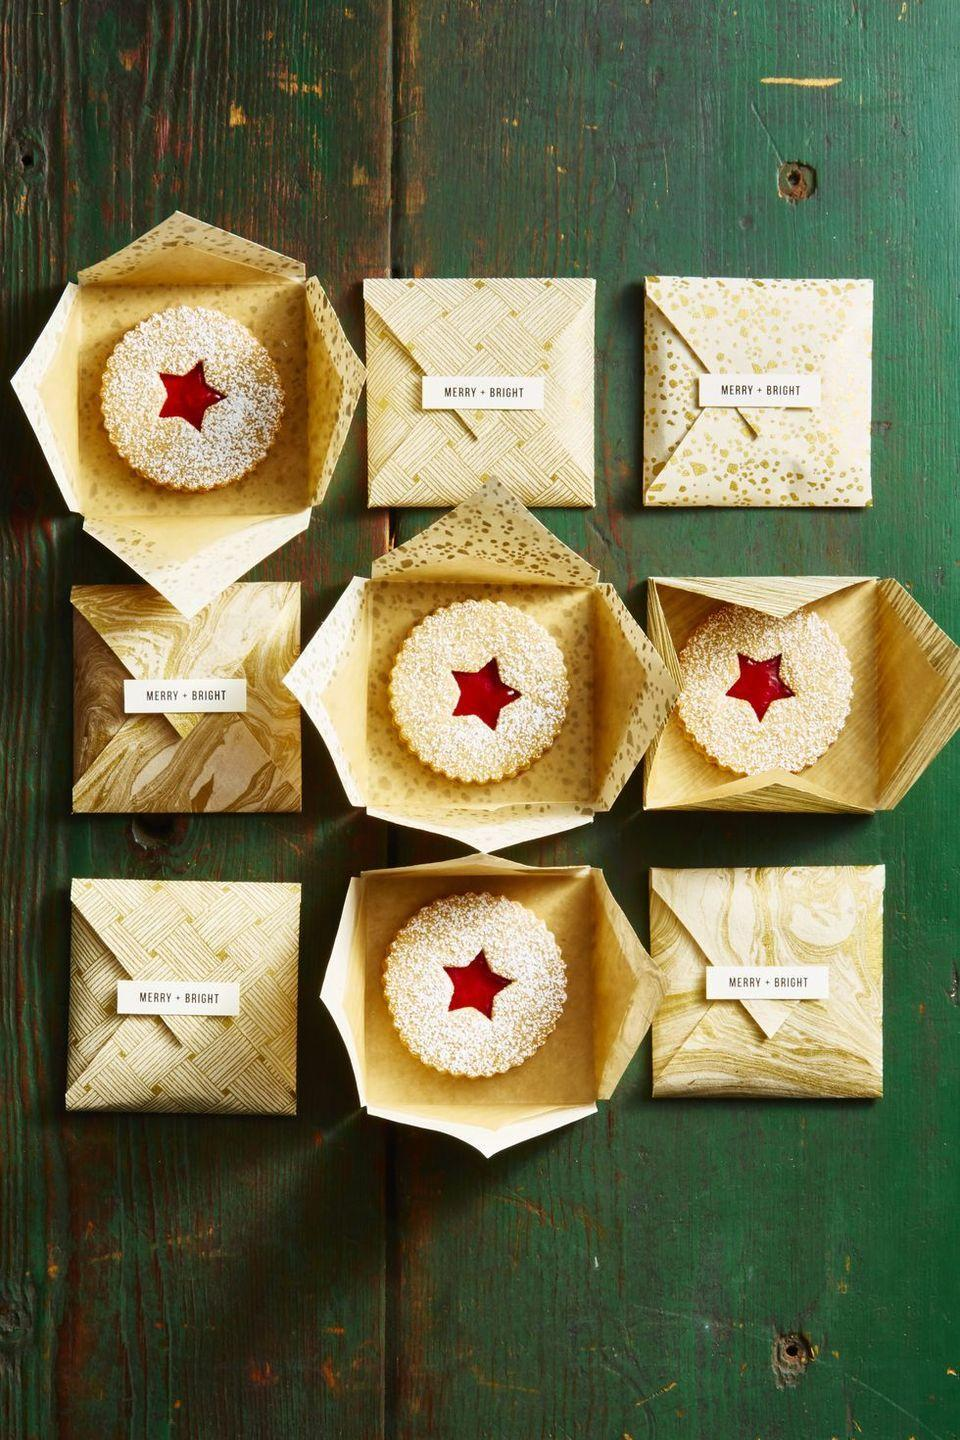 """<p>It's what's on the inside that counts. Wrap each cookie in a personalized paper envelope to gift to all your loved ones this holiday season.</p><p><em><a href=""""https://www.goodhousekeeping.com/food-recipes/dessert/a46807/jam-sandwich-cookie-recipe/"""" rel=""""nofollow noopener"""" target=""""_blank"""" data-ylk=""""slk:Get the recipe for Jam Sandwich Cookies »"""" class=""""link rapid-noclick-resp"""">Get the recipe for Jam Sandwich Cookies »</a></em></p>"""